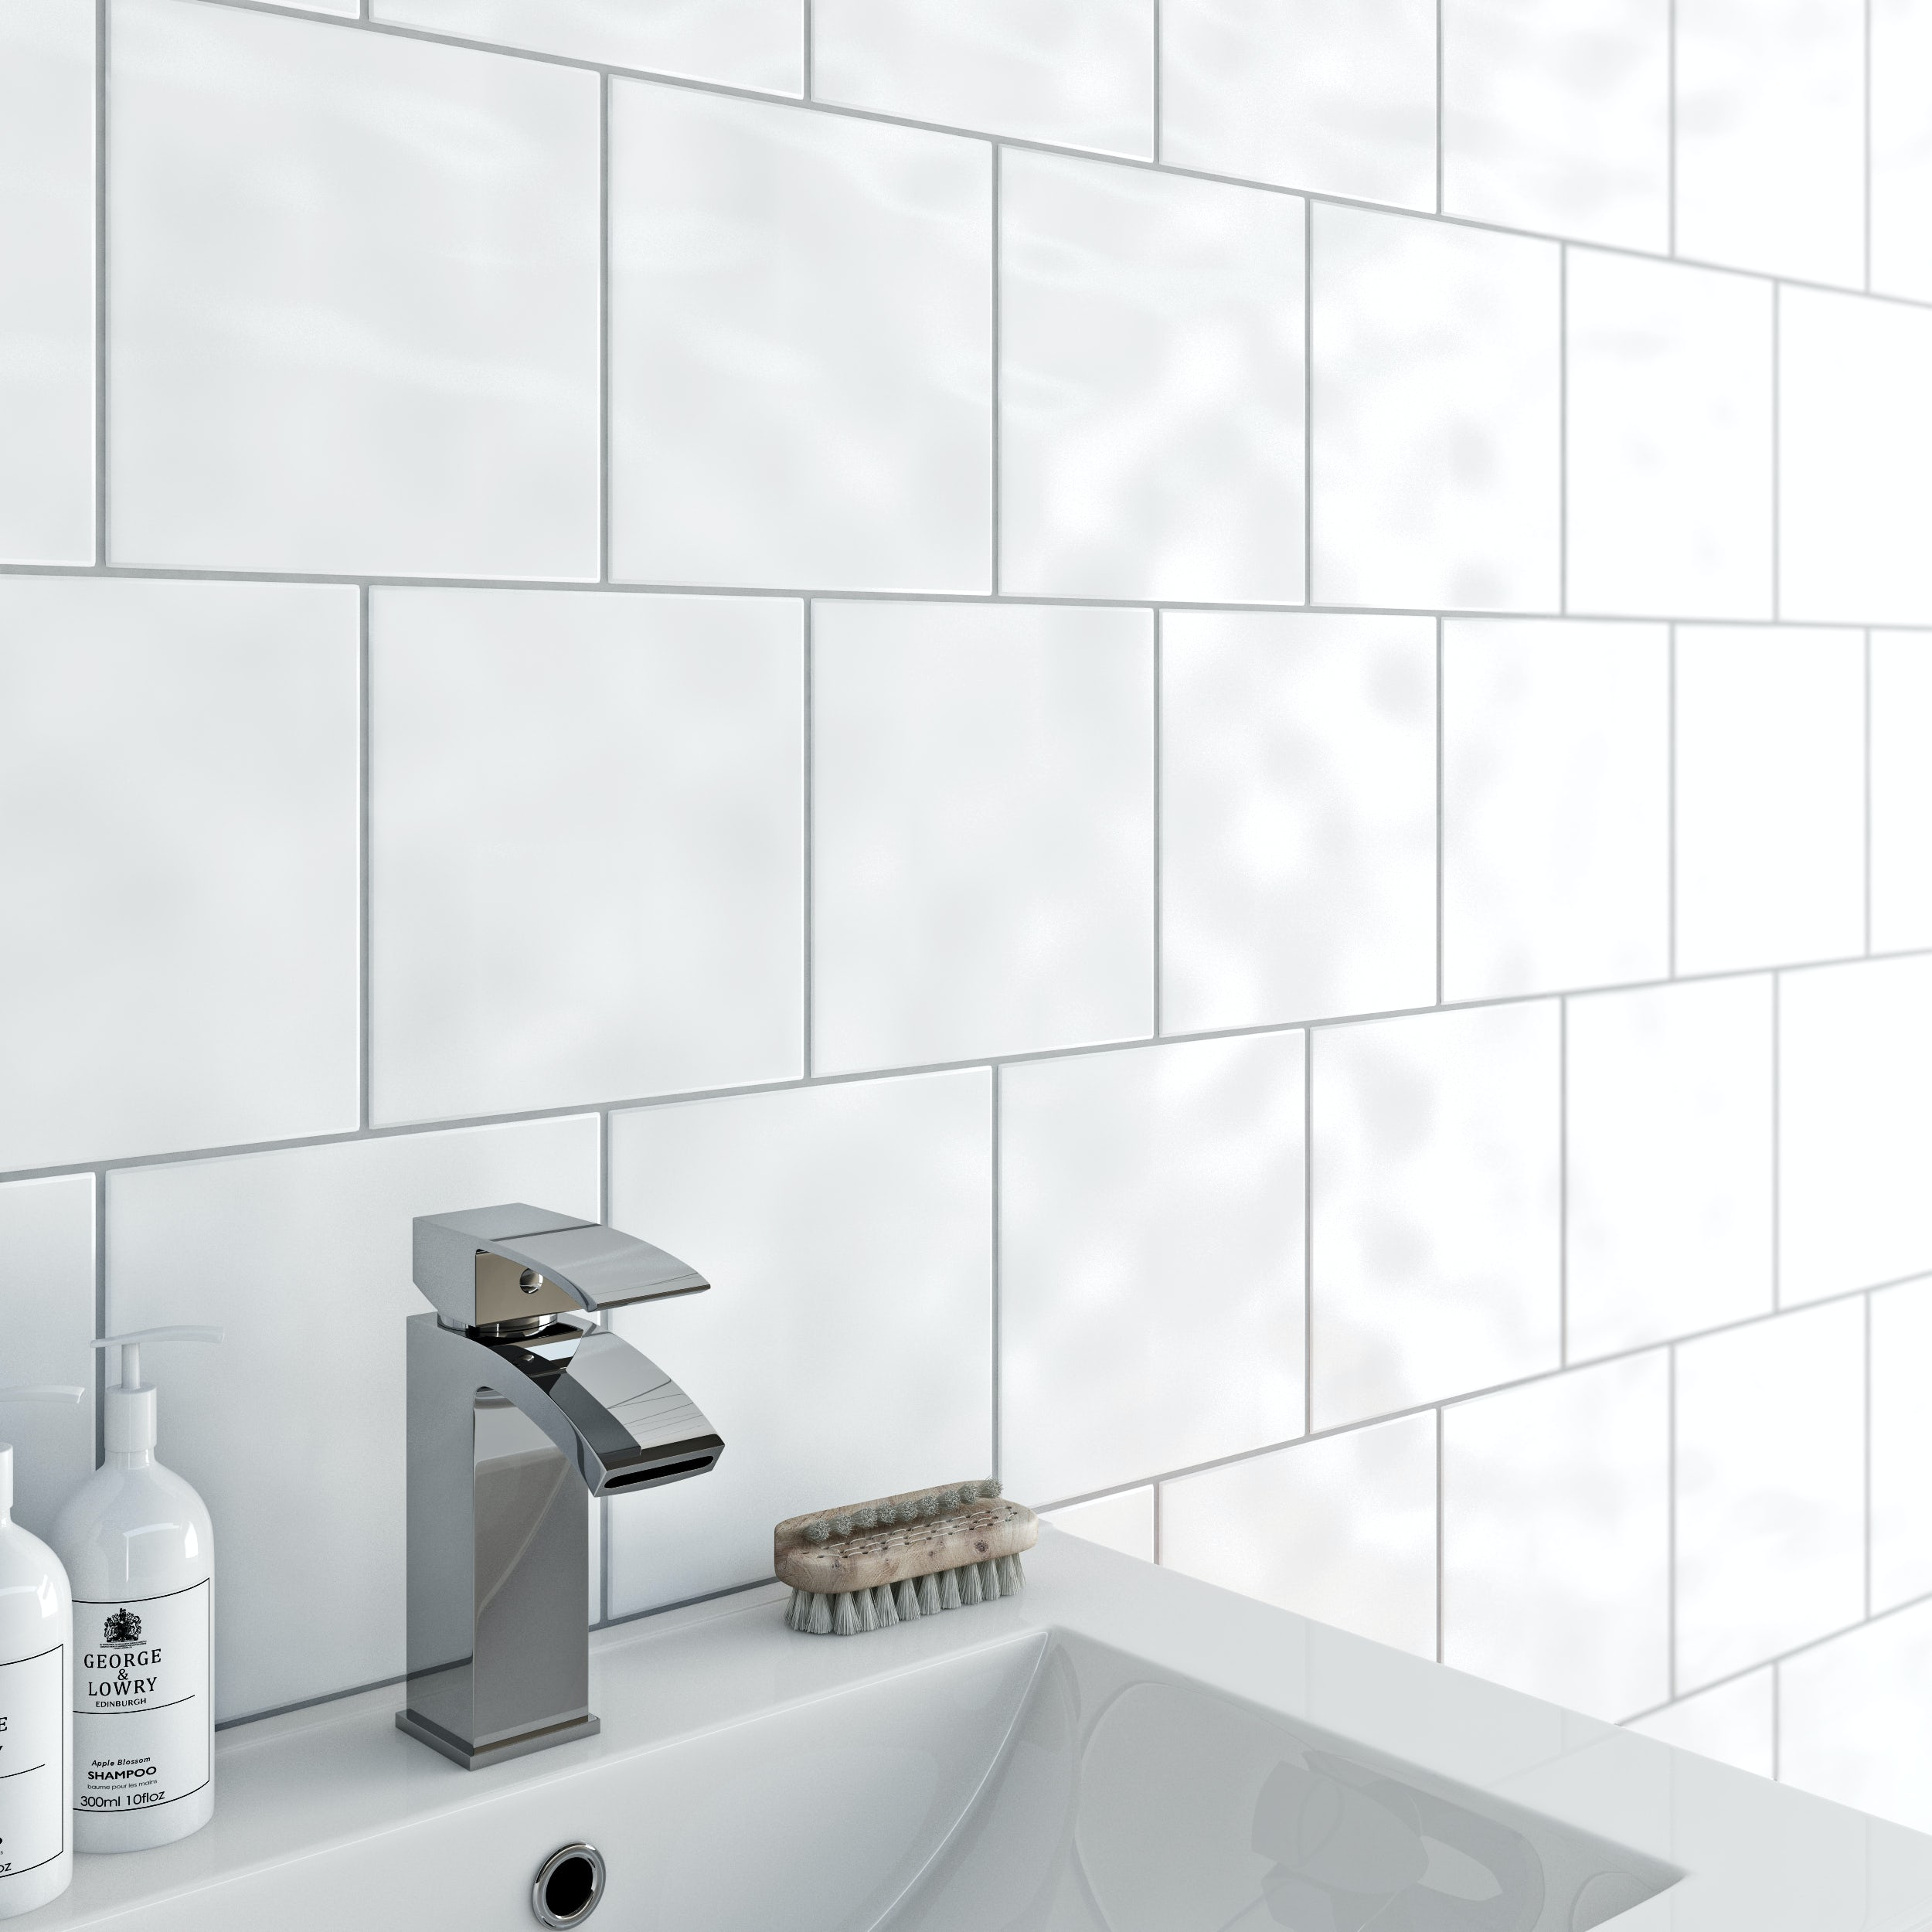 How To Clean Bathroom Wall Tiles Easily: Clarity Bumpy White Gloss Tile 200mm X 200mm